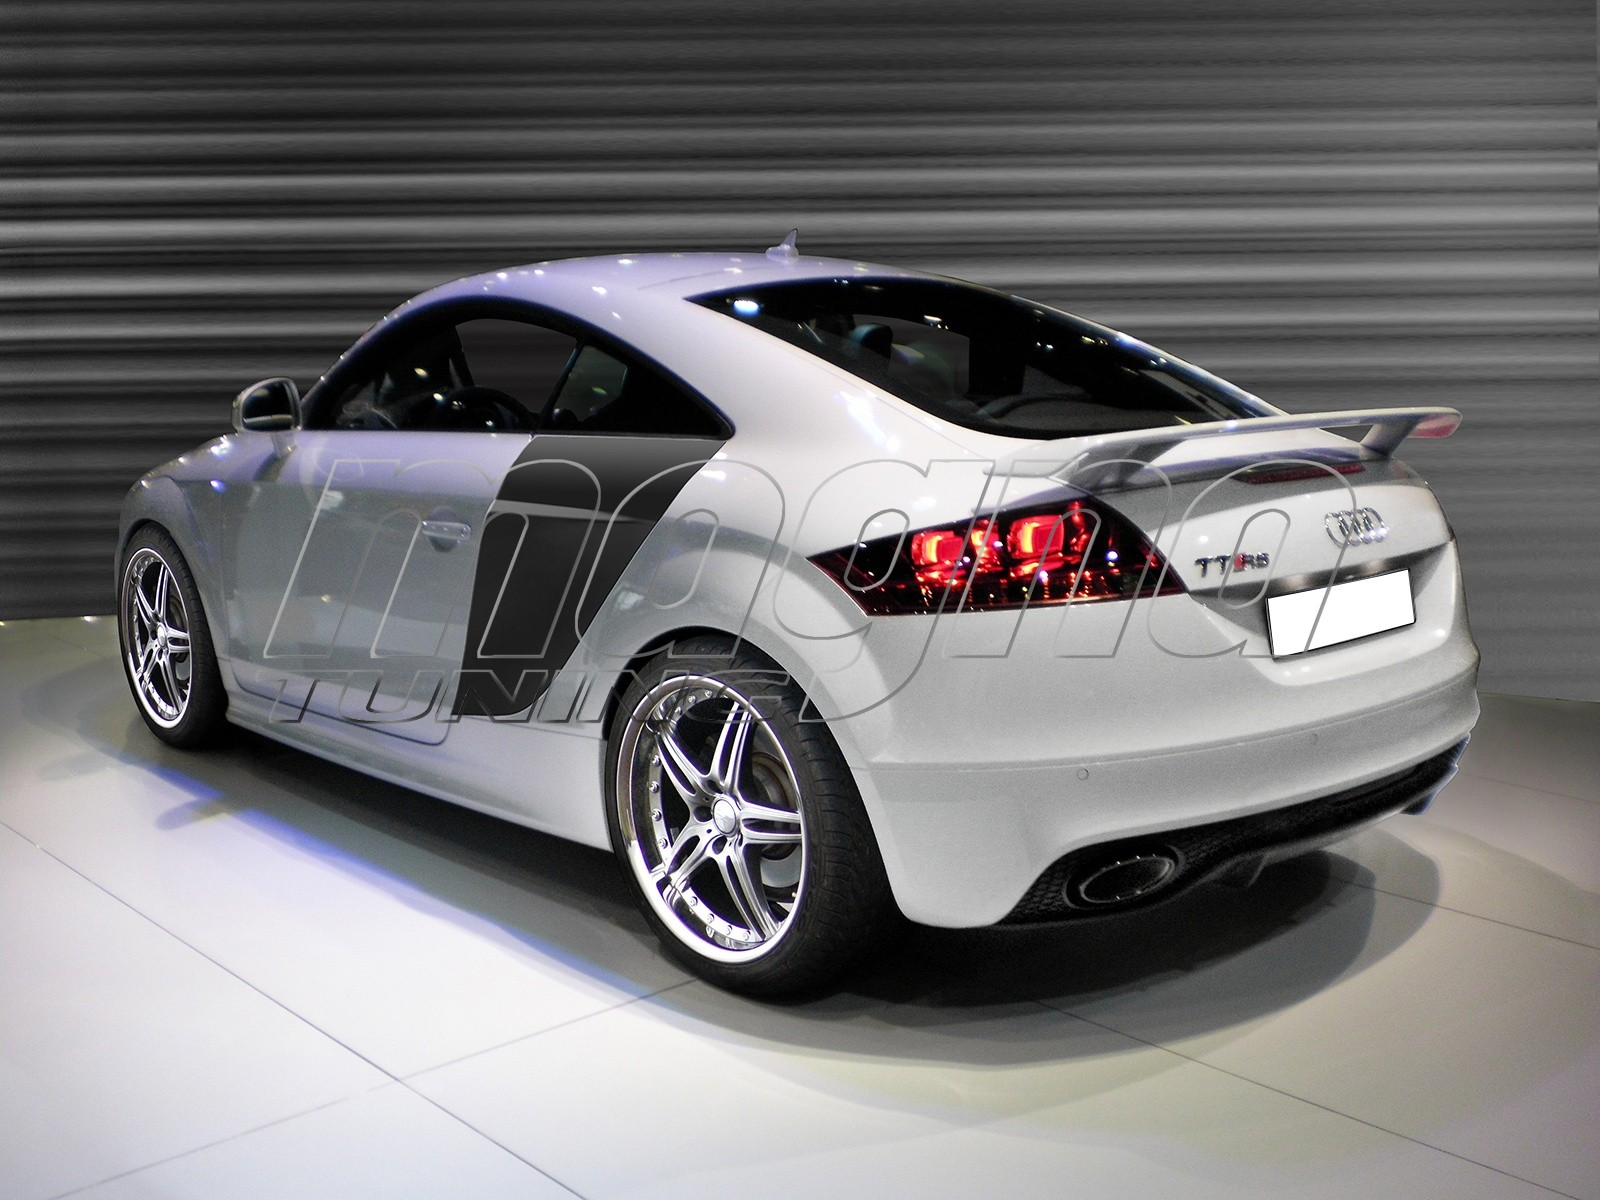 audi tt 8j tt rs look body kit. Black Bedroom Furniture Sets. Home Design Ideas